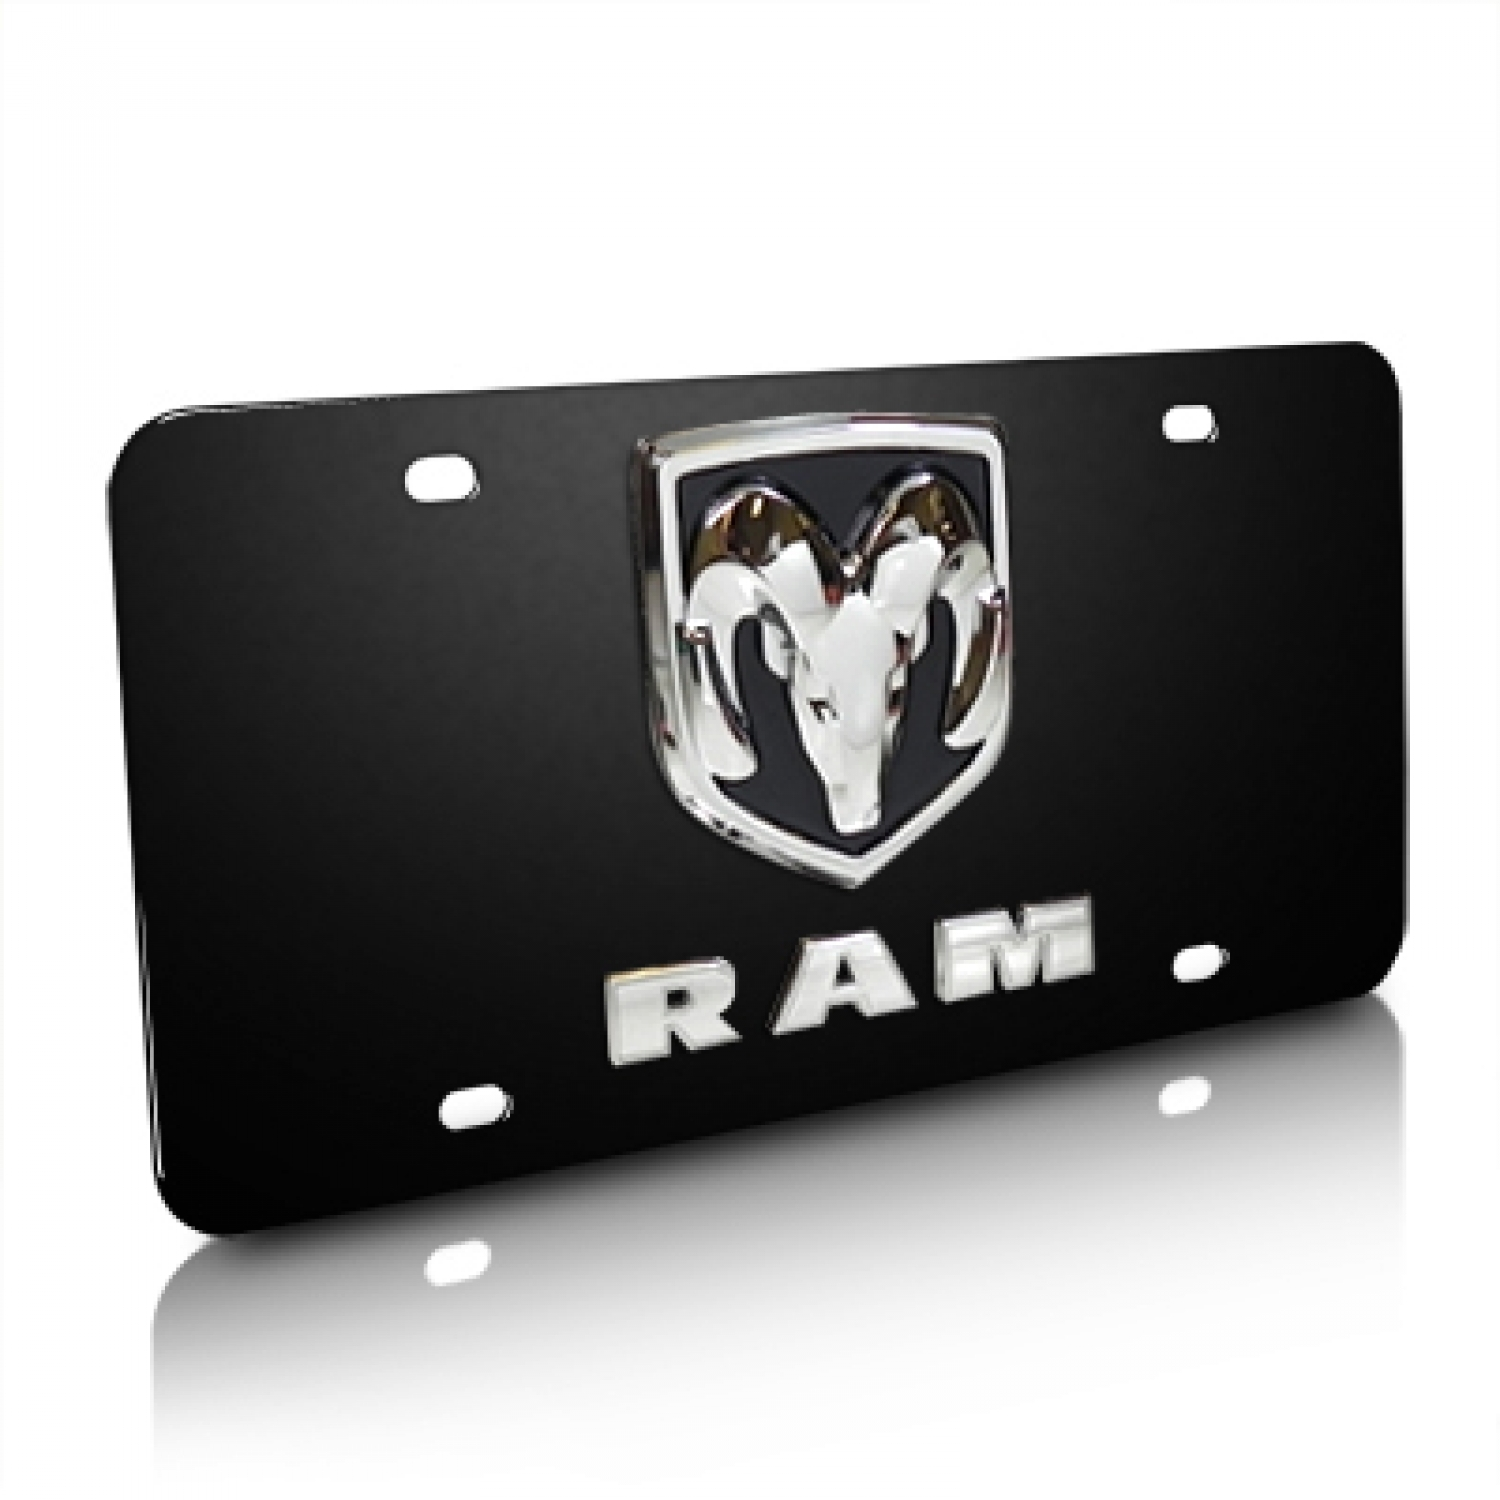 RAM Double 3D Logo Black Stainless Steel License Plate